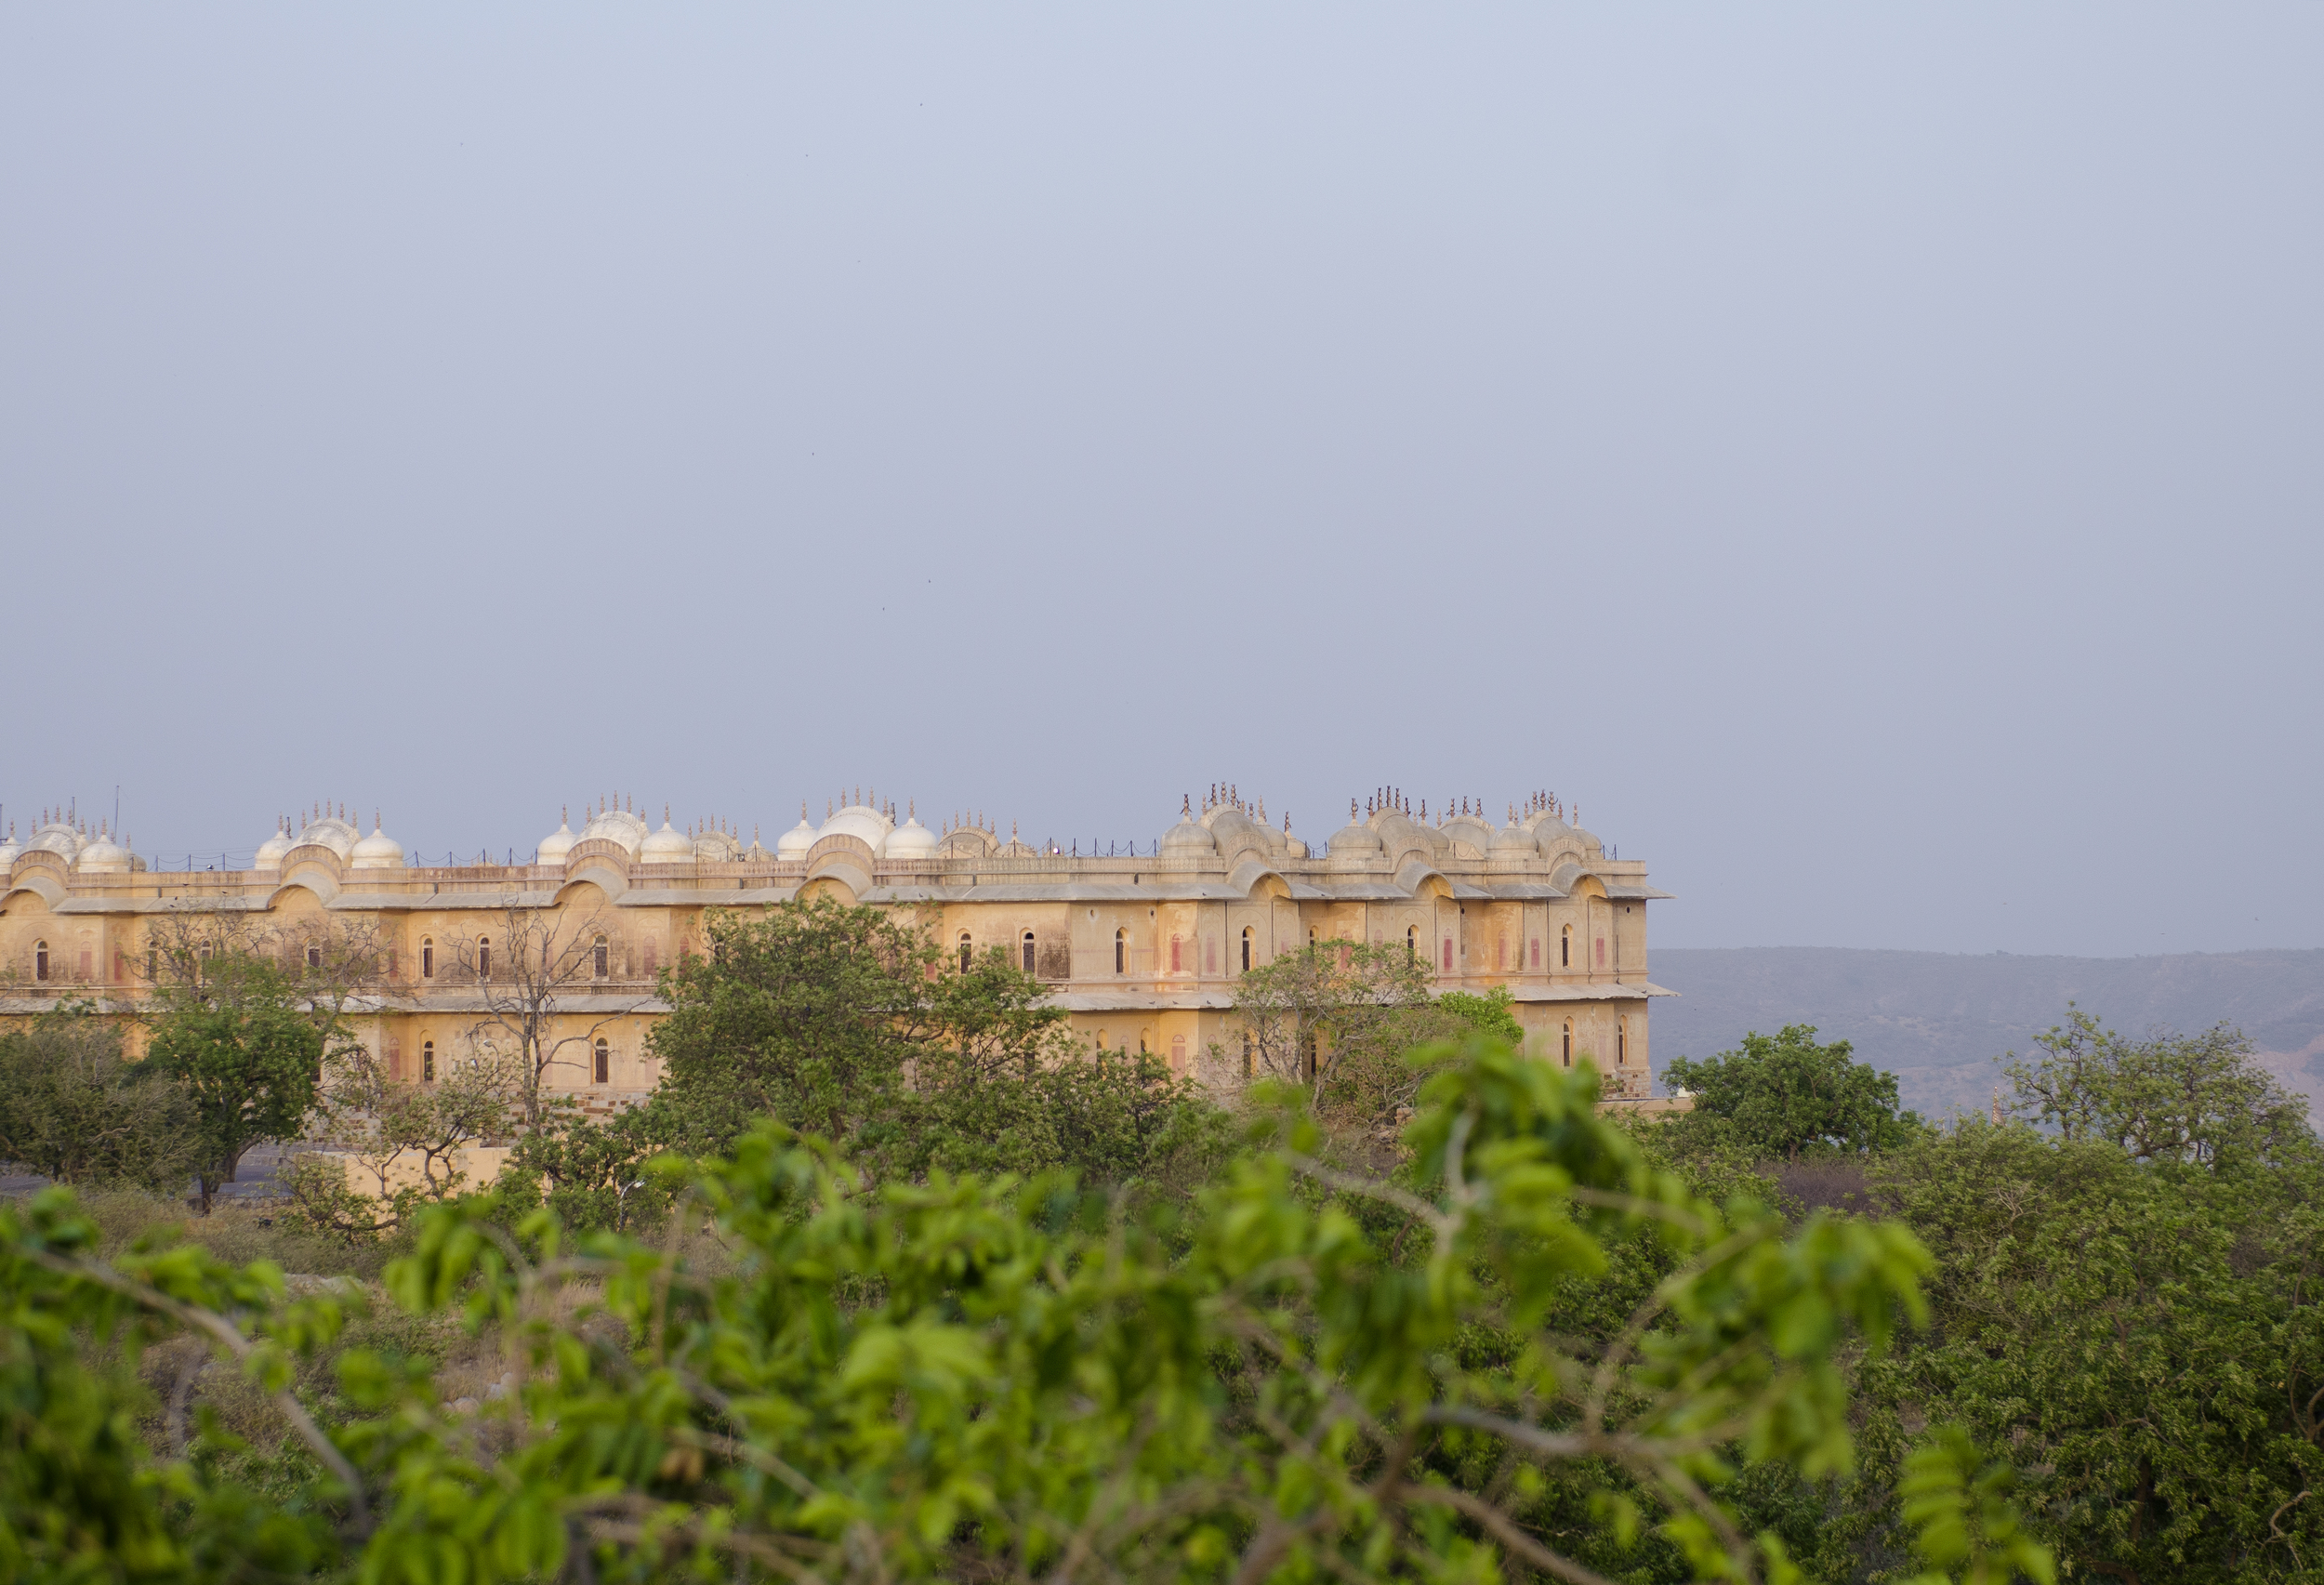 Jaigarh Fort from up on one of the walls that surrounds the fort